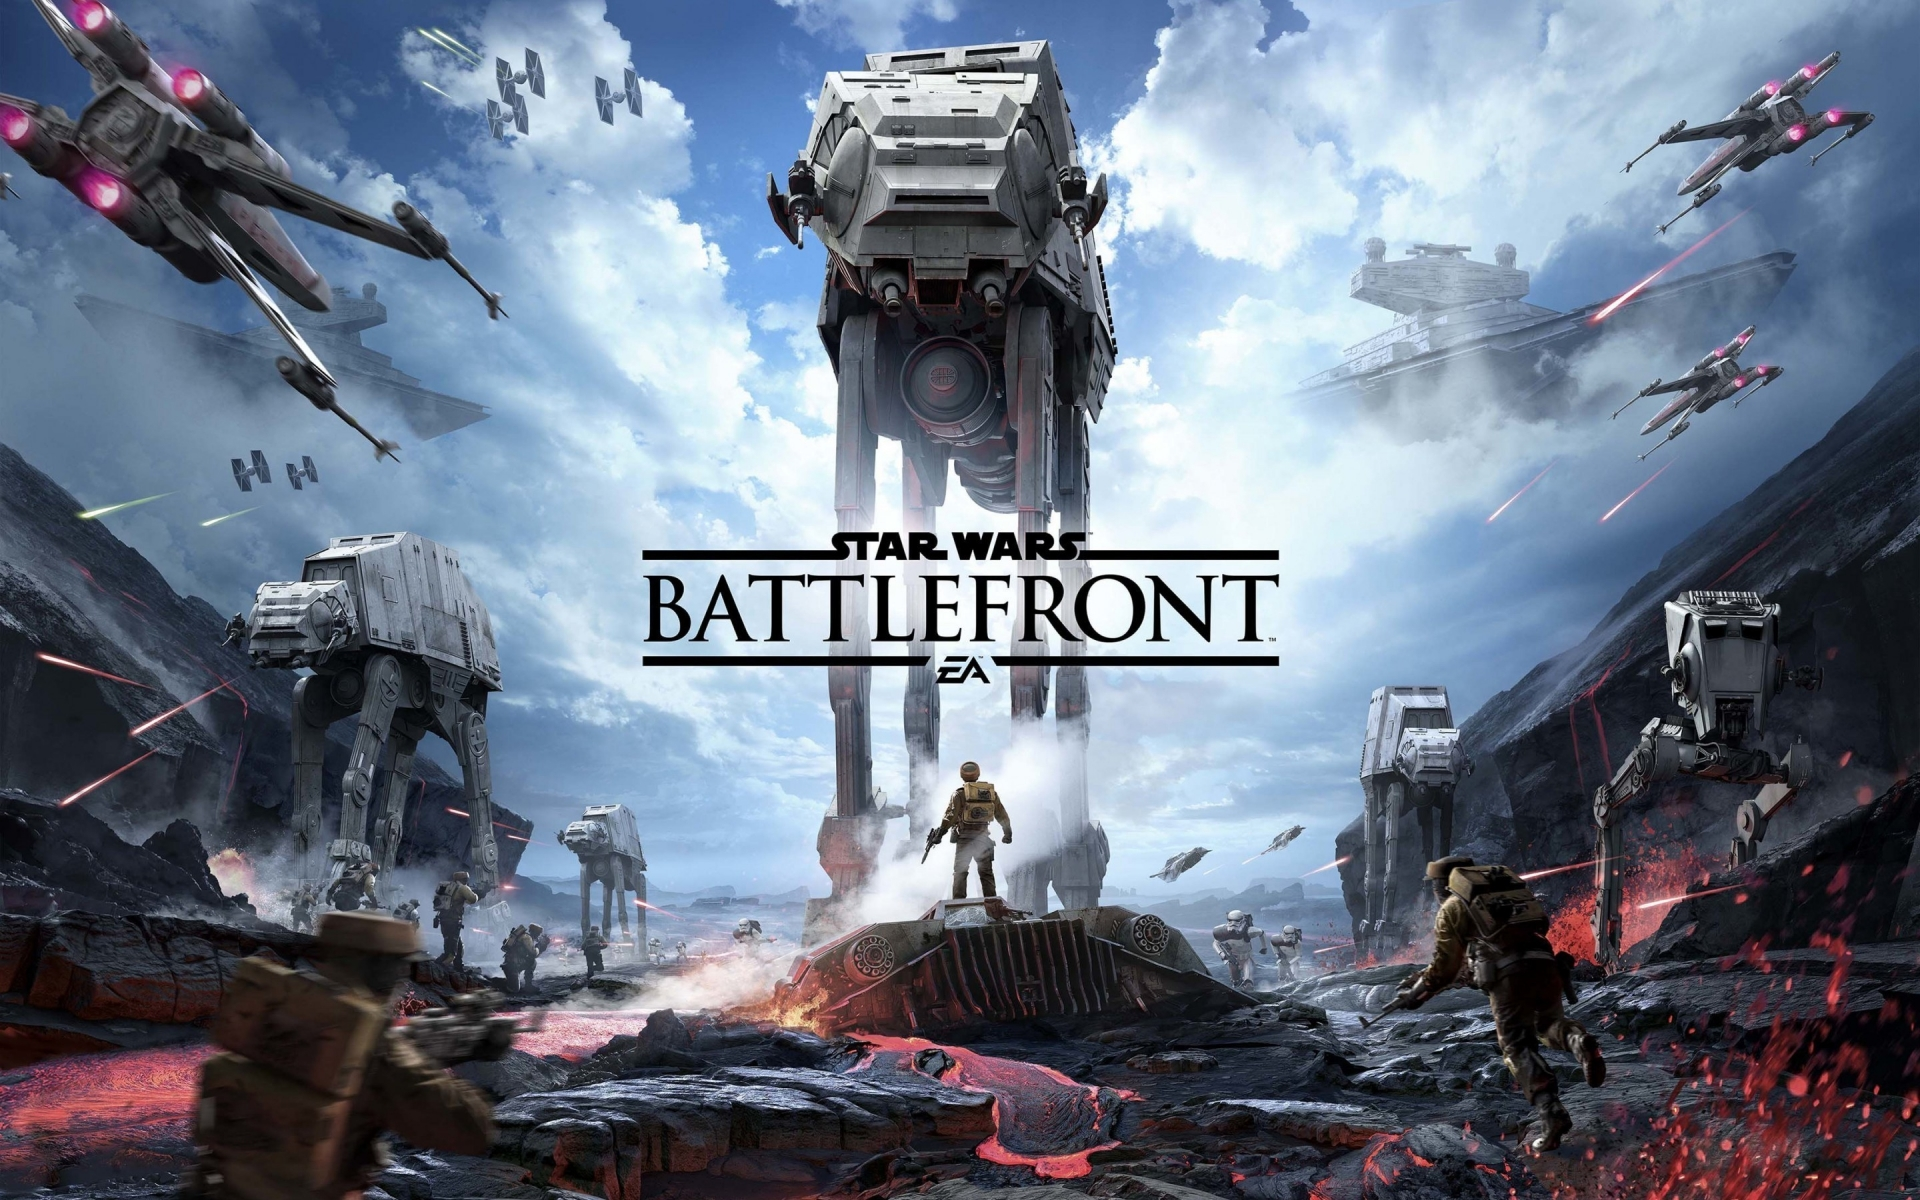 Star Wars Battlefront  for 1920 x 1200 widescreen resolution